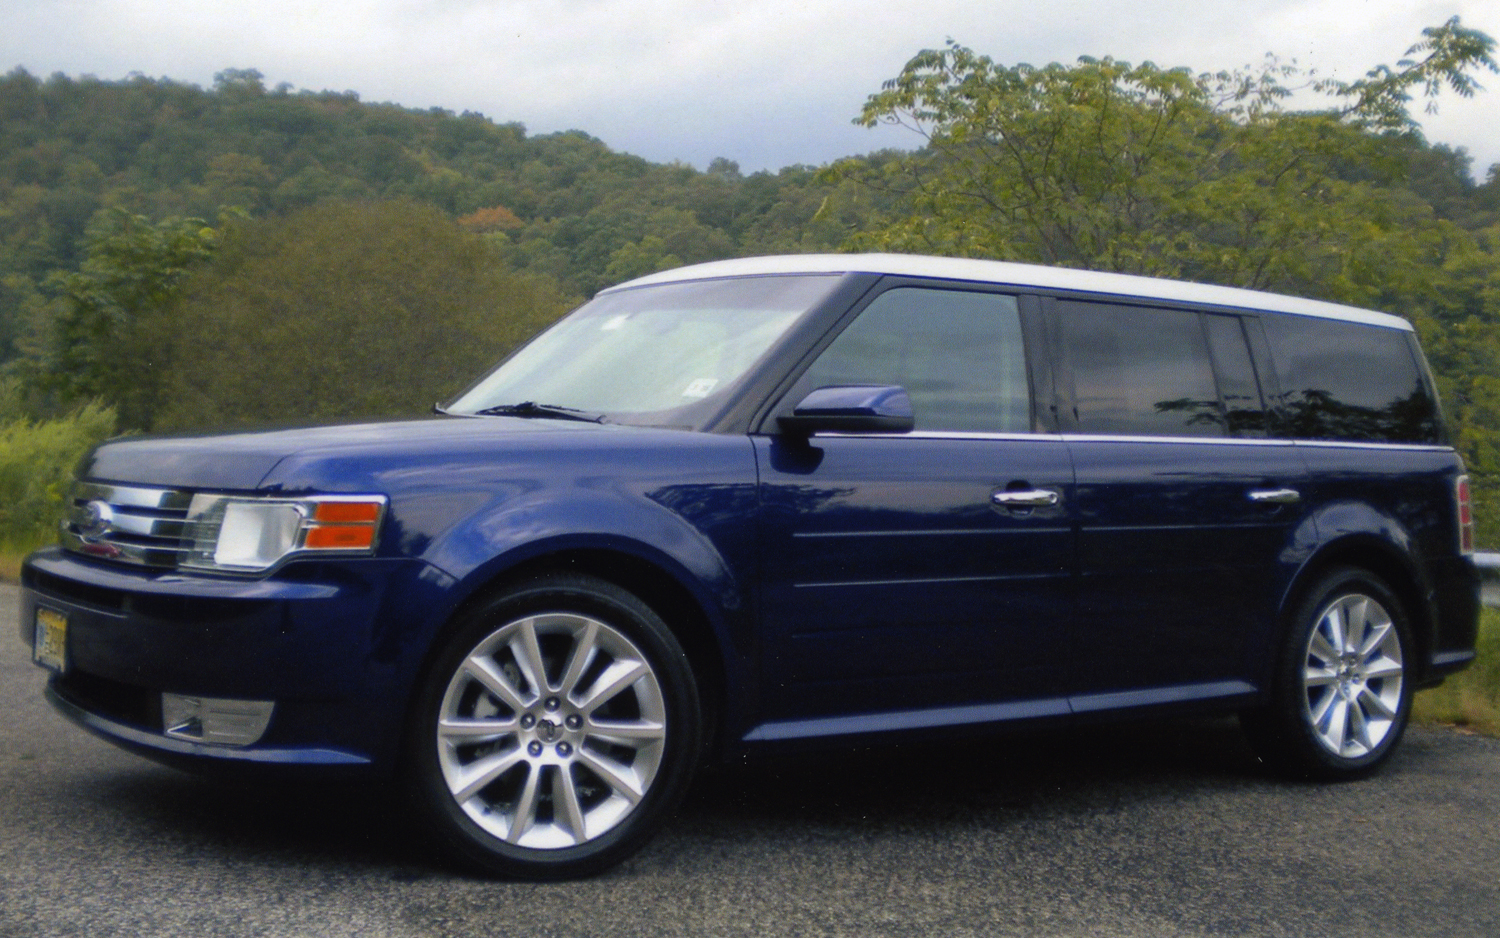 Ford flex 2011 photo - 6